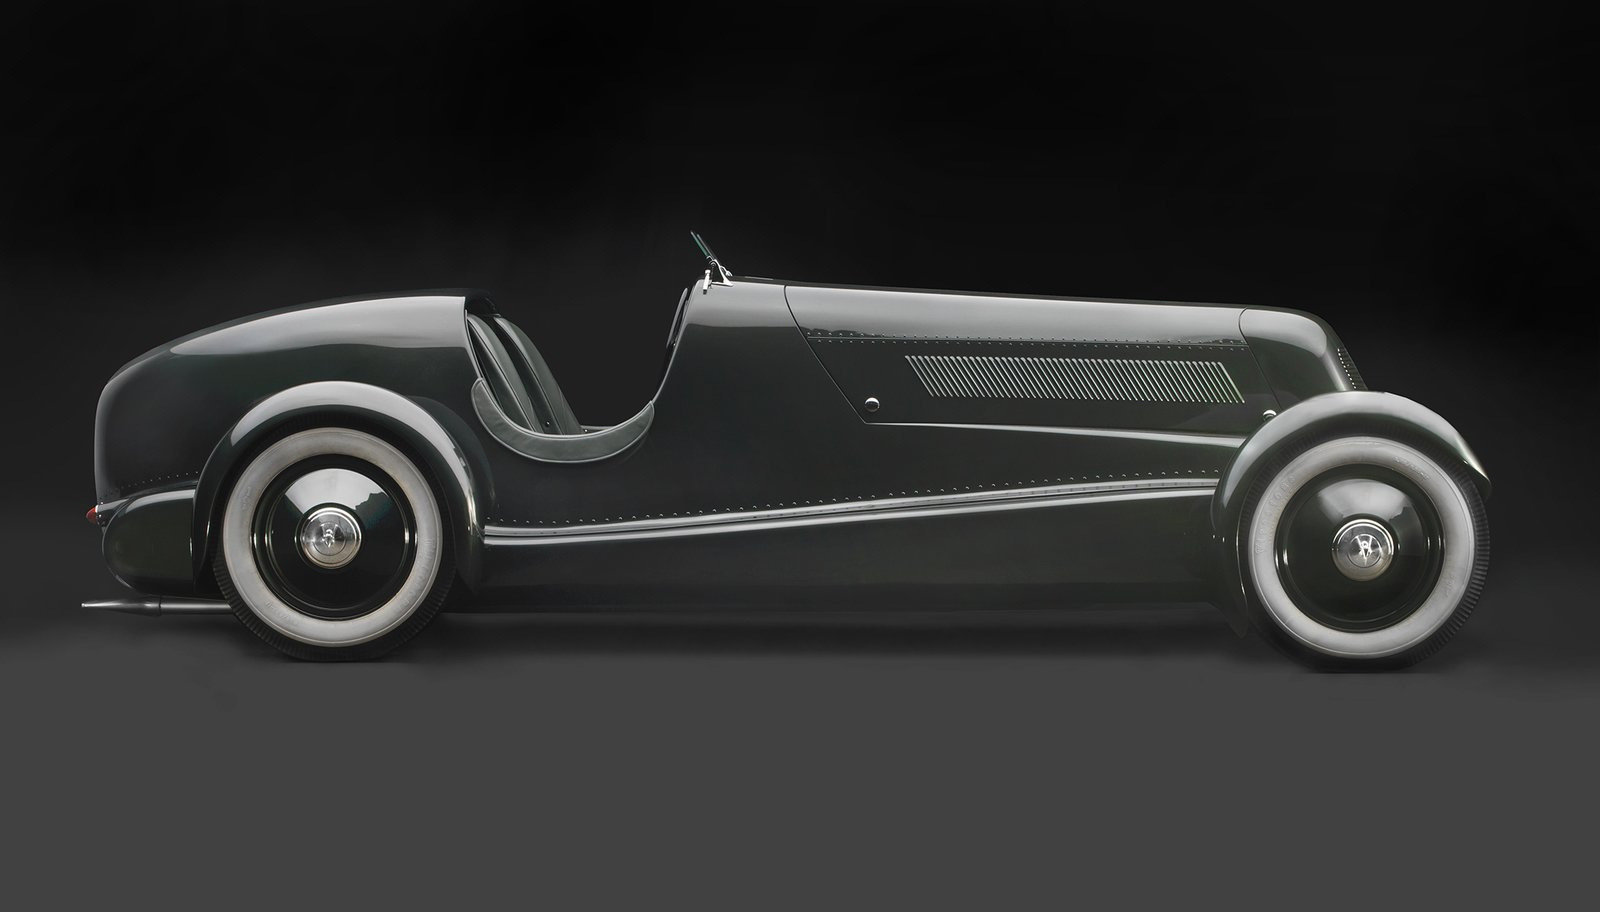 1934 Edsel Ford's Model 40 Speedster, Courtesy of the Edsel and Eleanor Ford House  Photo 14 of 15 in Examining the Architecture of the Art Deco Automobile